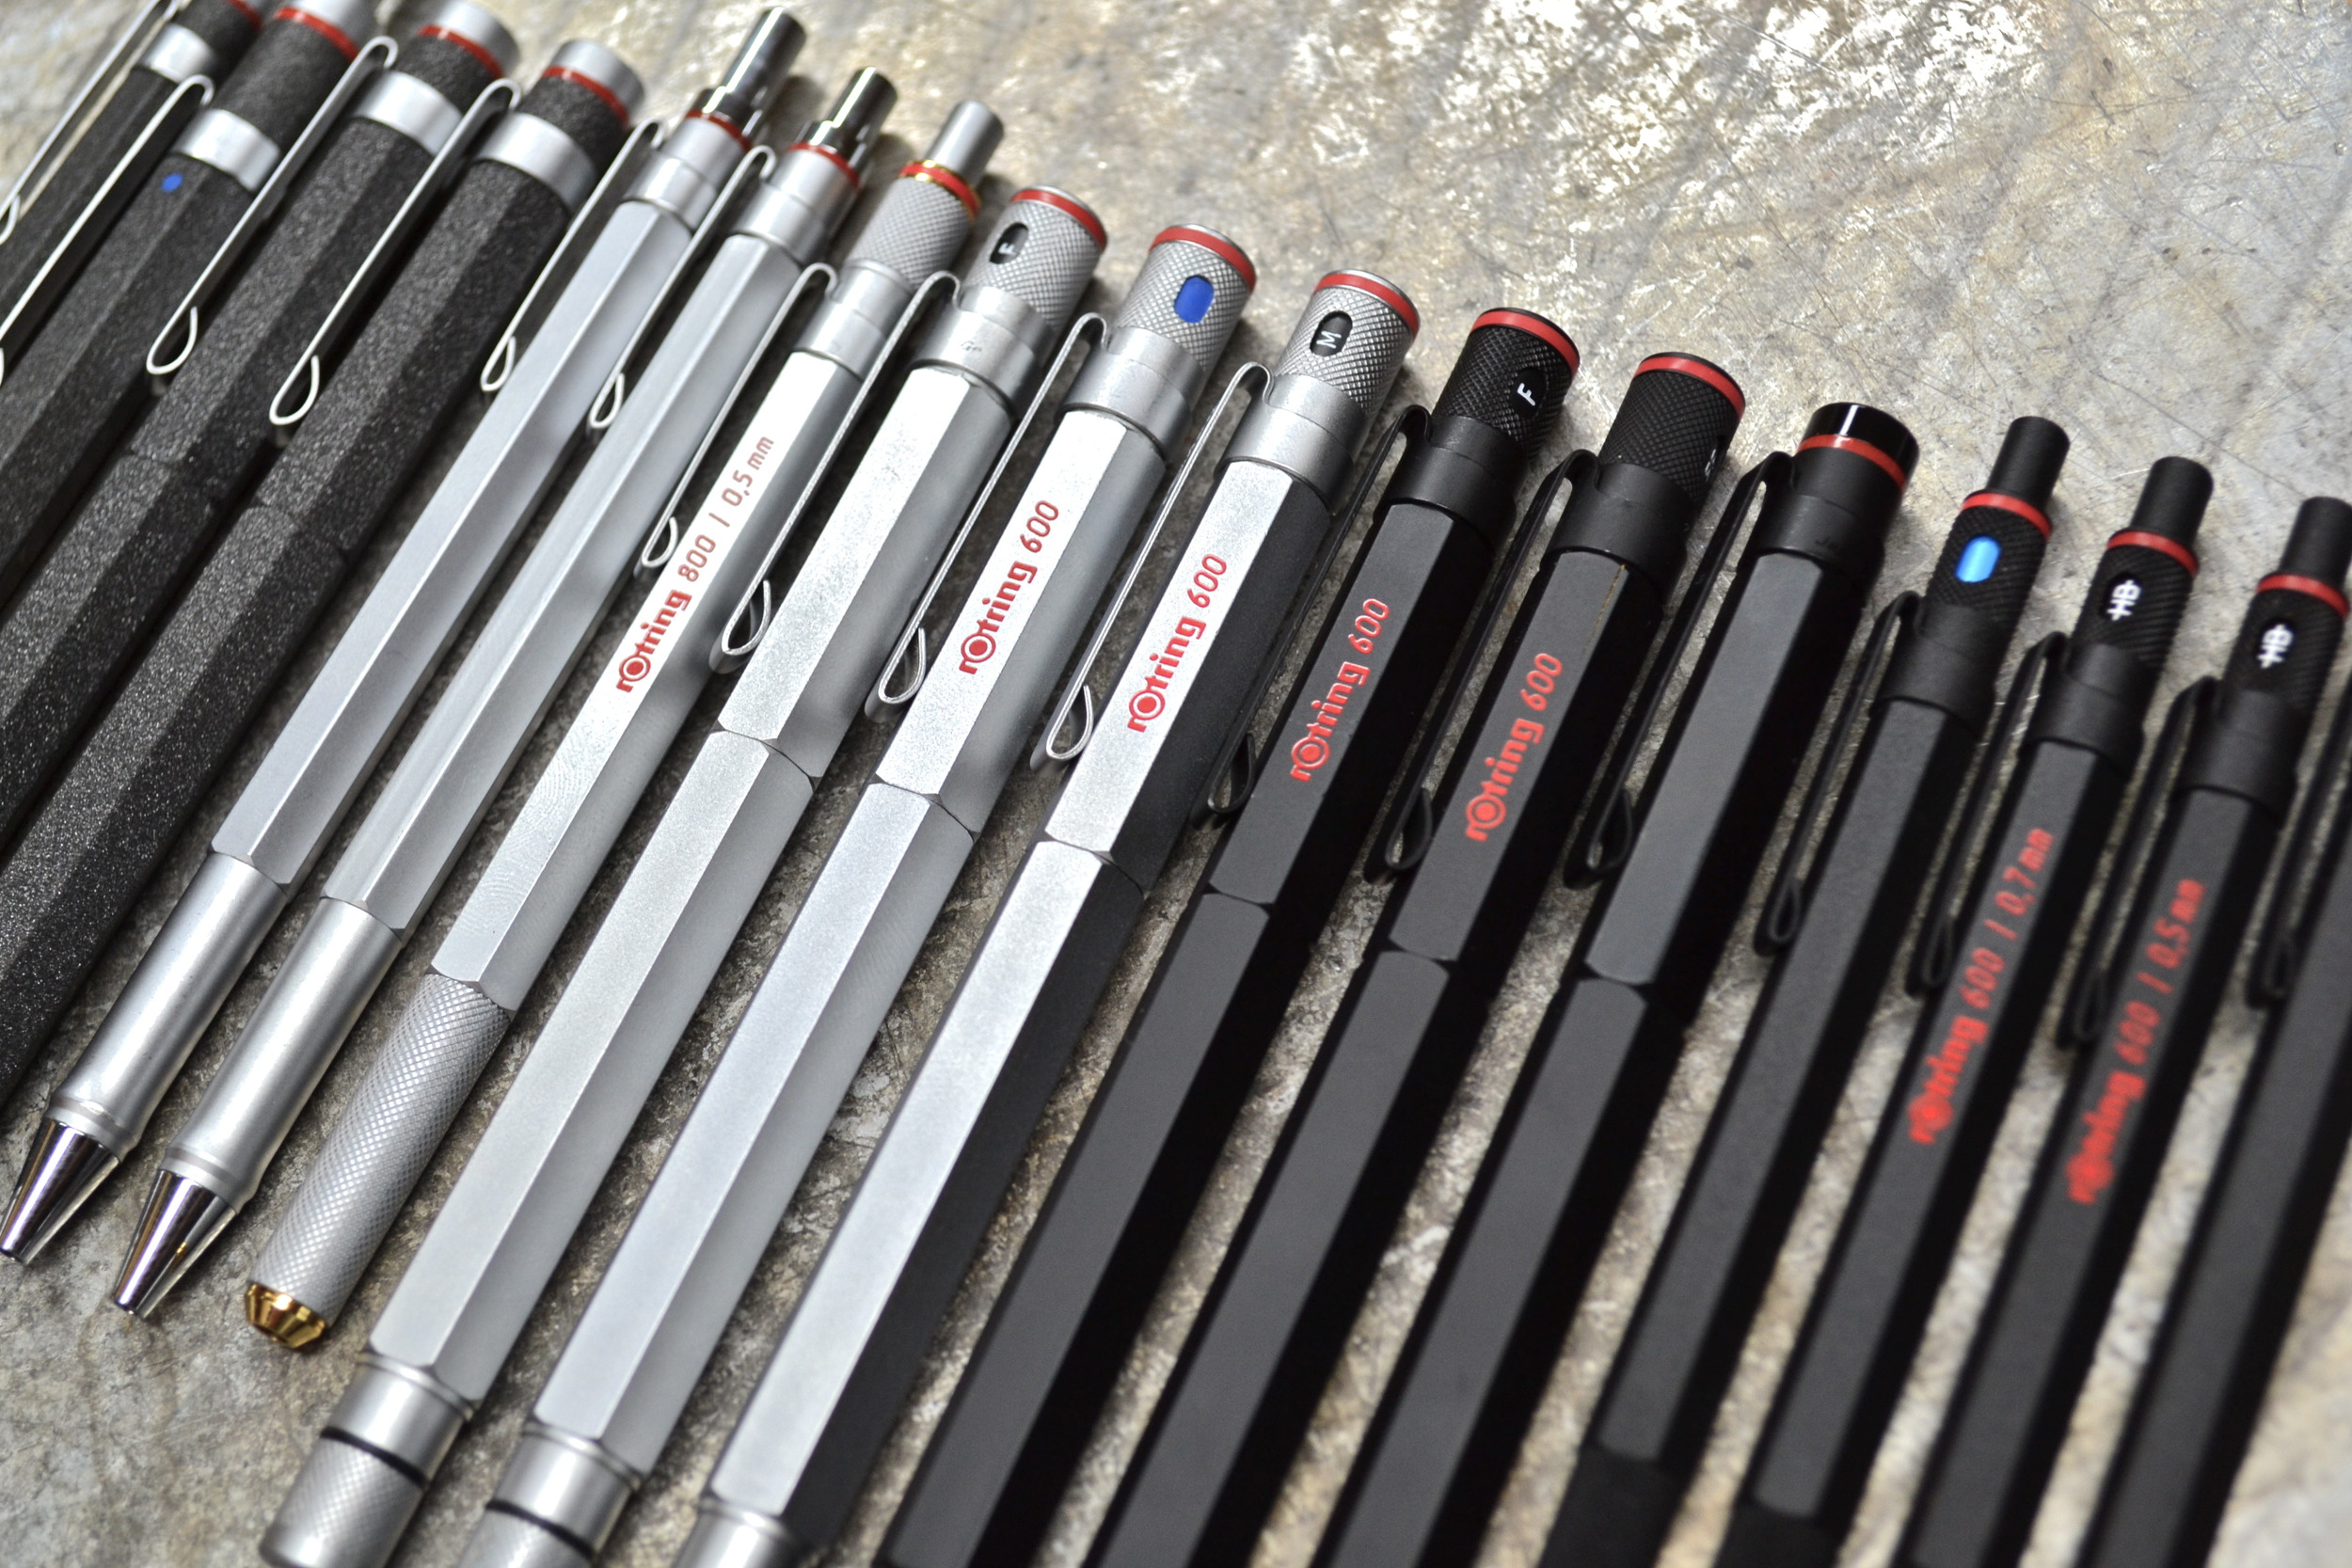 SO YOU WANT TO BUY A VINTAGE rOtring?